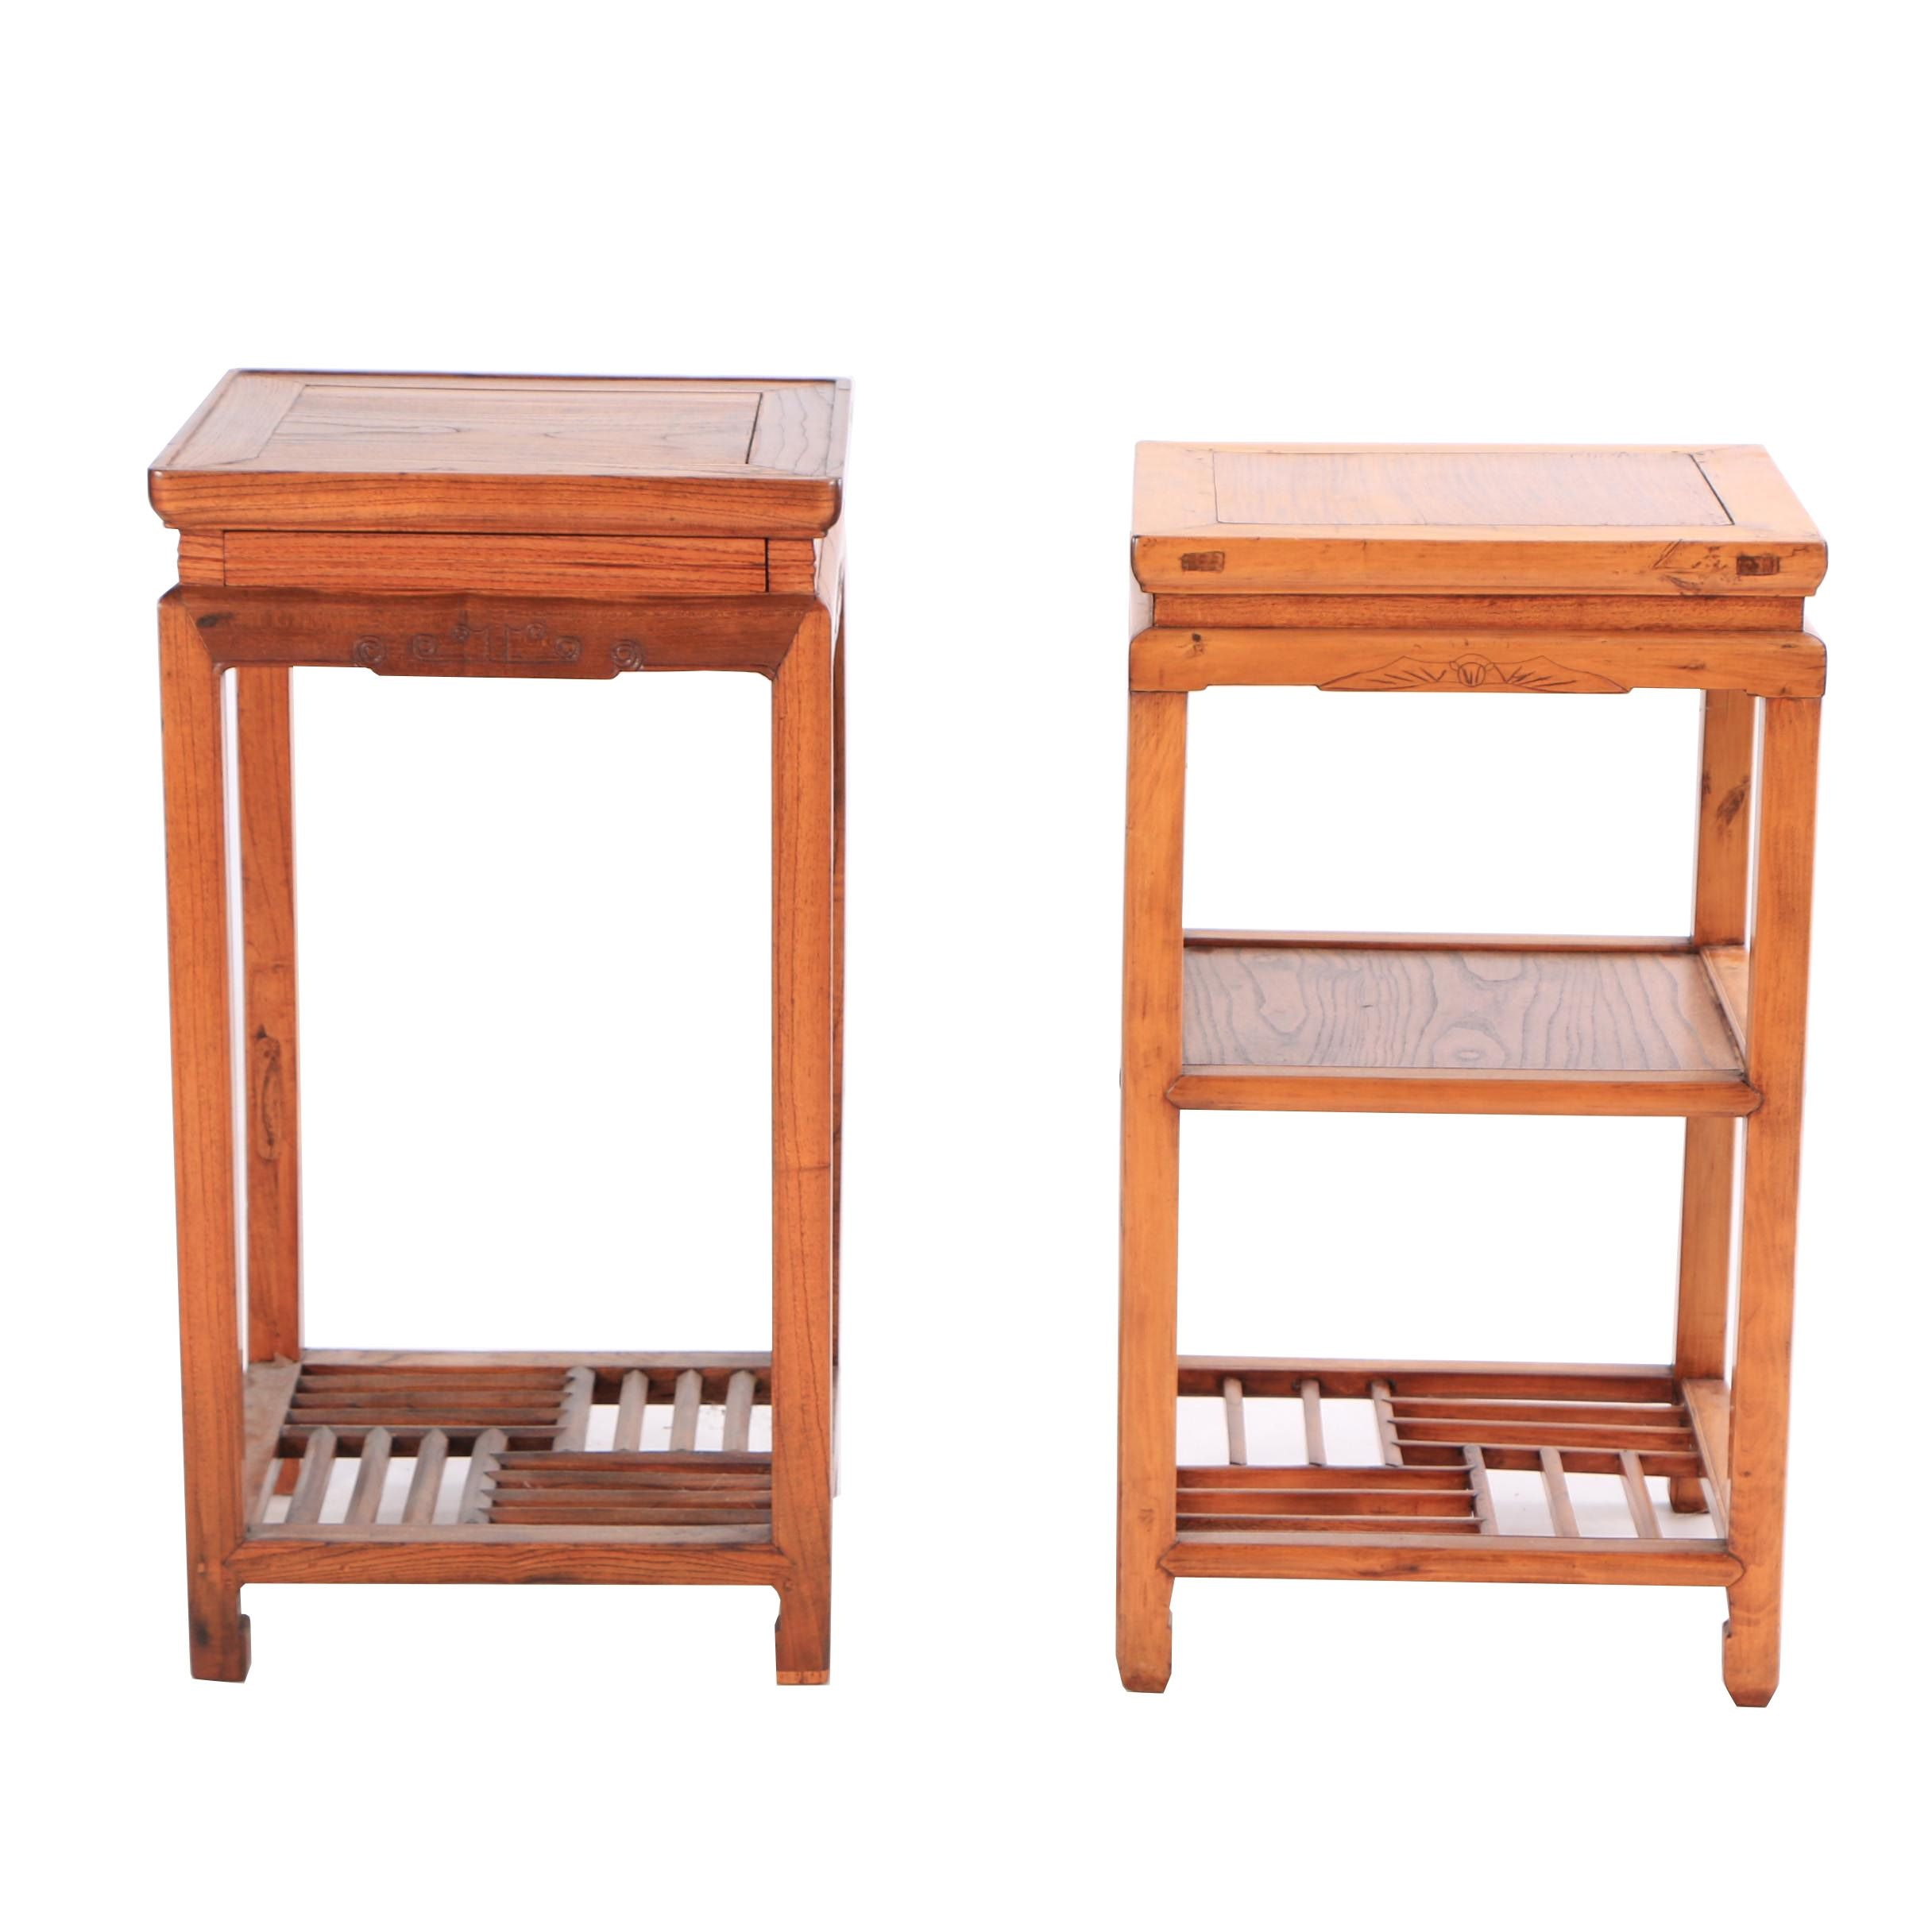 Chinese Mixed Wood Plant Stands, Early 20th Century